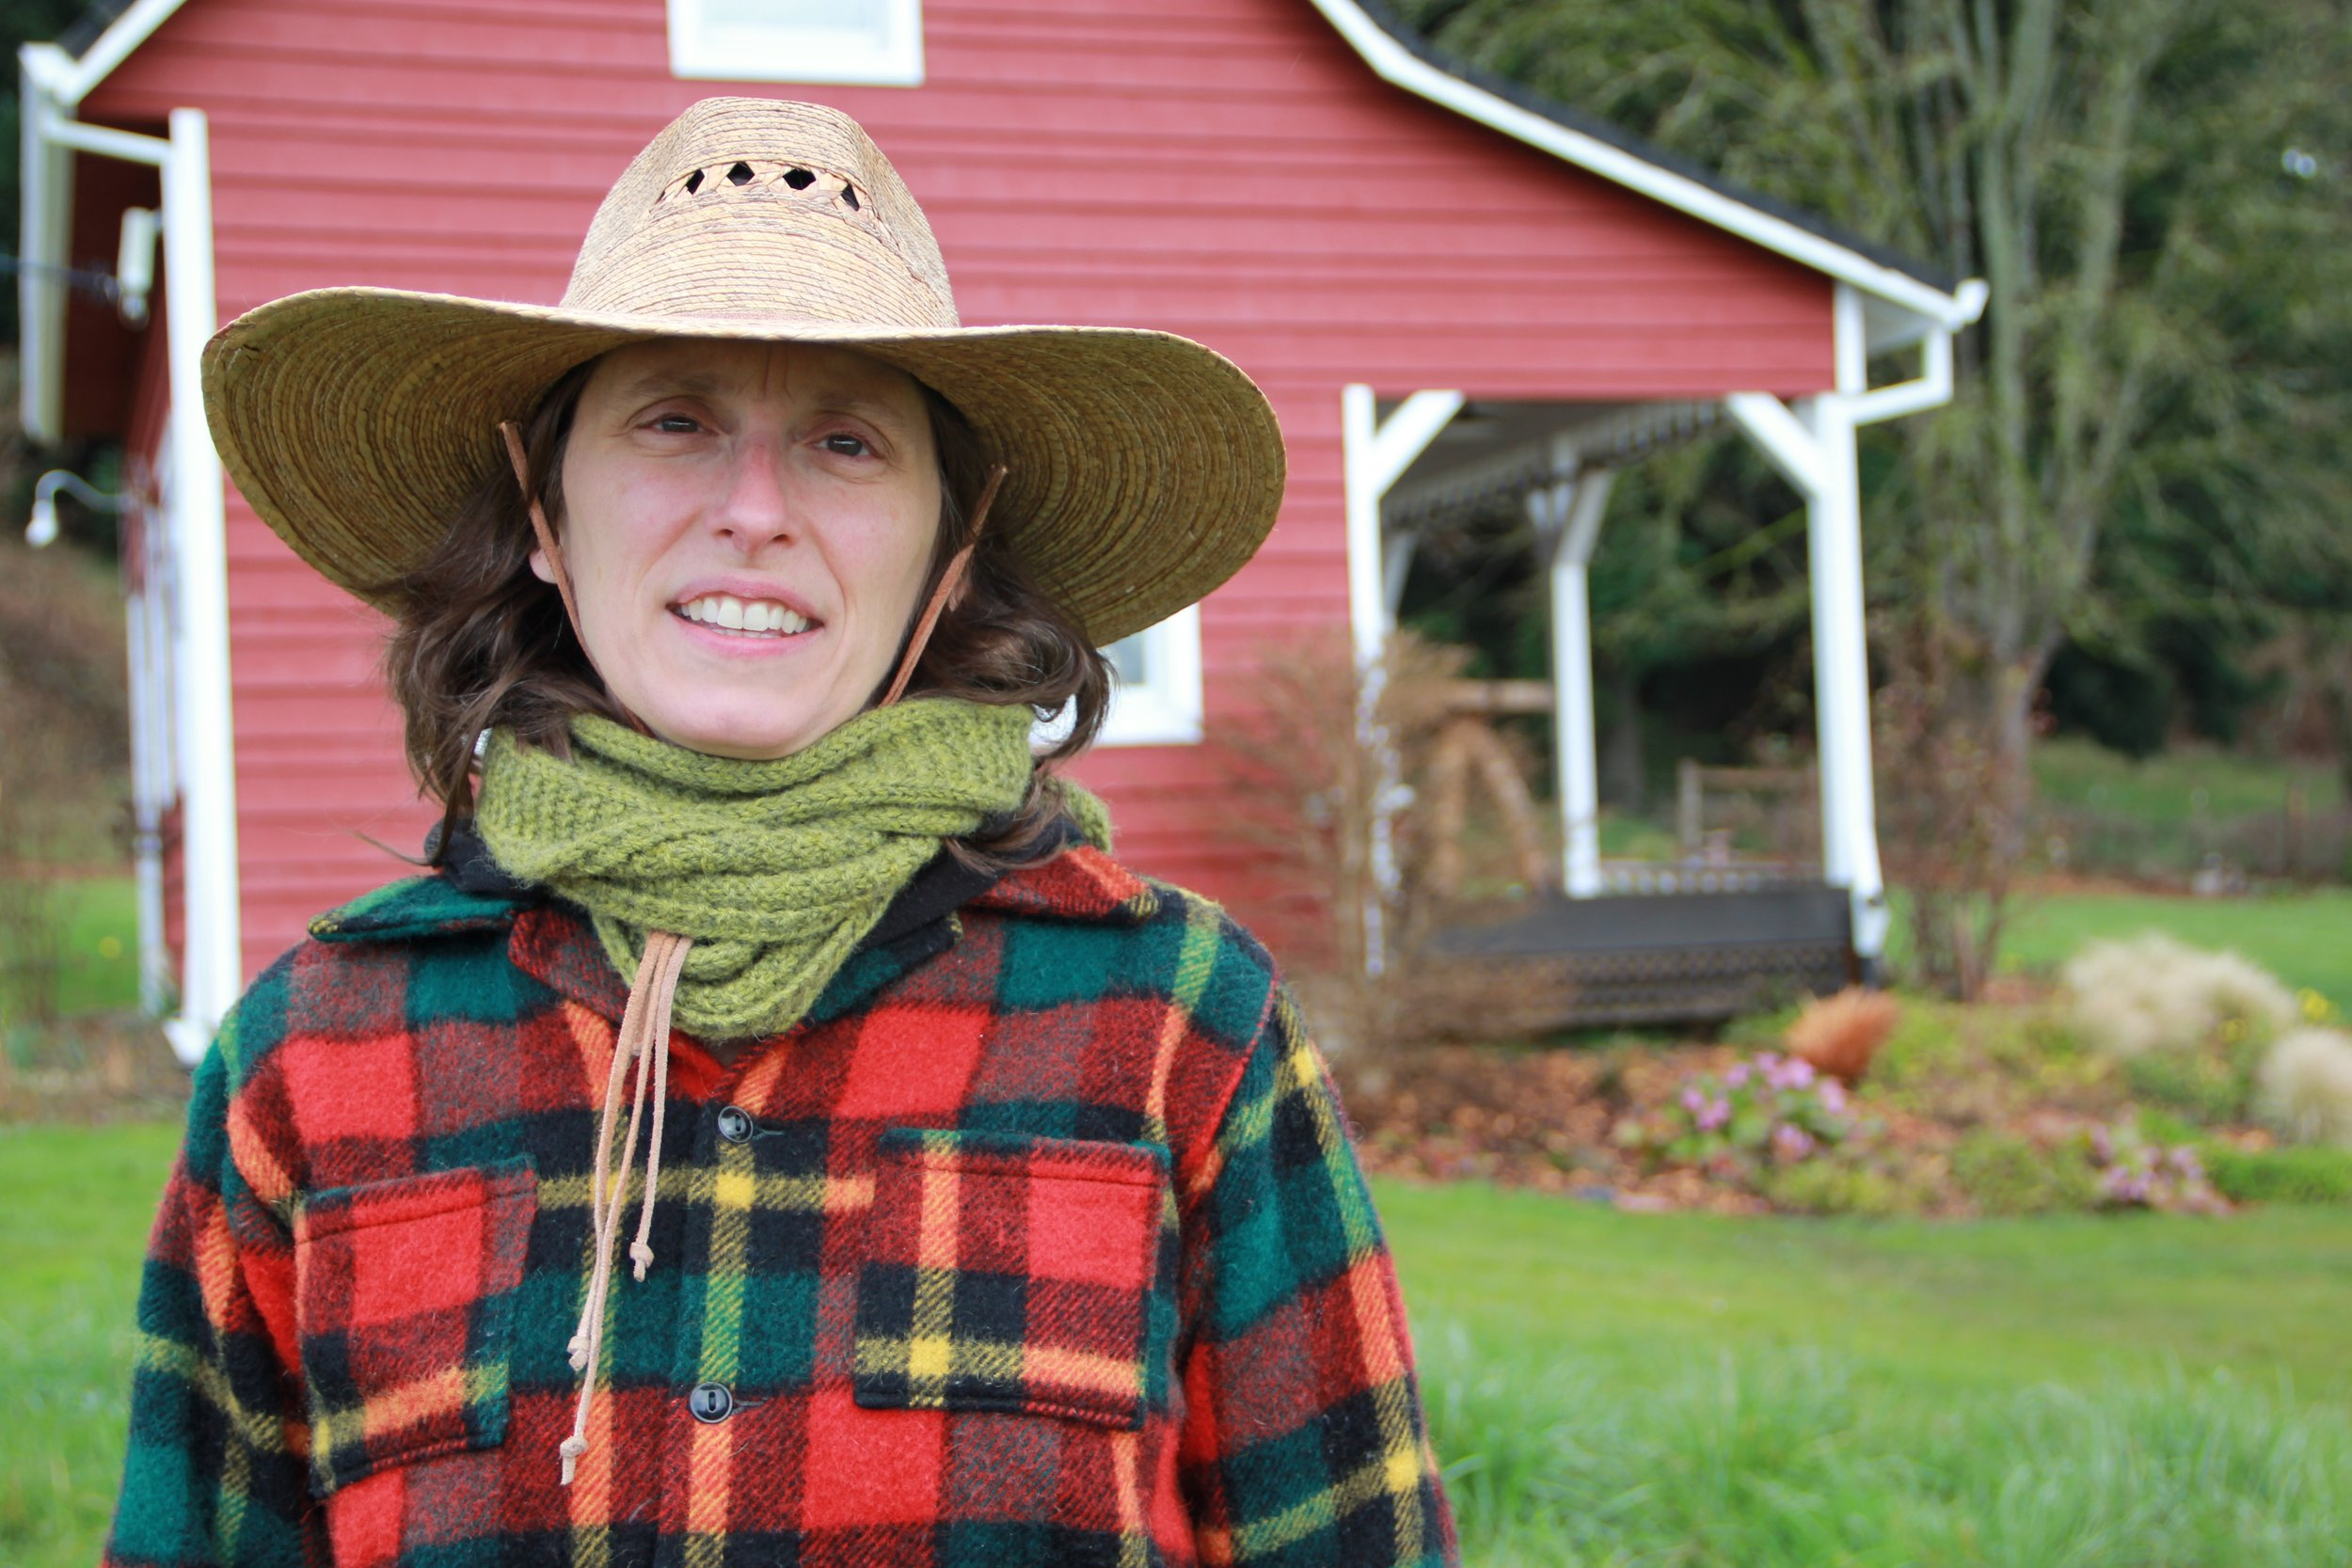 """GOOD FOOD, BAD FOOD: Agricultural, Ethics and Personal Choice - Friday, April 26, 2019 at 5:30 p.m. - PLEASE JOIN US for four thought-provoking conversations provided in partnership with Oregon Humanities Conversation Project whose goal is to connect people to ideas and to each other, not to push an agenda or arrive at consensus. Conversation is a powerful medium to invite our community's diverse perspectives and explore challenging questions. Hope you can join in!!4: GOOD FOOD, BAD FOOD: Agricultural, Ethics and Personal ChoiceOregon boasts a multibillion-dollar agricultural economy that includes both industrial and small-scale community-based agriculture (e.g., CSAs, farmers' markets, and community gardens).Kristy Athens, author ofGet Your Pitchfork On! The Real Dirt on Country Living and TEDx Talk speaker on food systems, will focus conversation on our efforts and choices to nurture community and local and autonomous food systems.Are these choices as consequential as consumers would like them to be?Does """"voting with your dollars"""" significantly shape our agricultural systems?.Rockford Grange doors open and soup's on at 5:30 pm. Conversation begins at 6:30 pm.$5.00 suggested donation for conversation; no one turned away for lack of fundsCheck oregonhumanities.org for more information about the Conversation Project and www.rockfordgrange.net to learn more about the other Conversations featured in the series Conversations at the Grange.For more information about this community discussion, please contact info@rockfordgrange.netThis program is made possible by the generous support of Oregon Humanities, the National Endowment for the Humanities, and the Oregon Cultural Trust."""